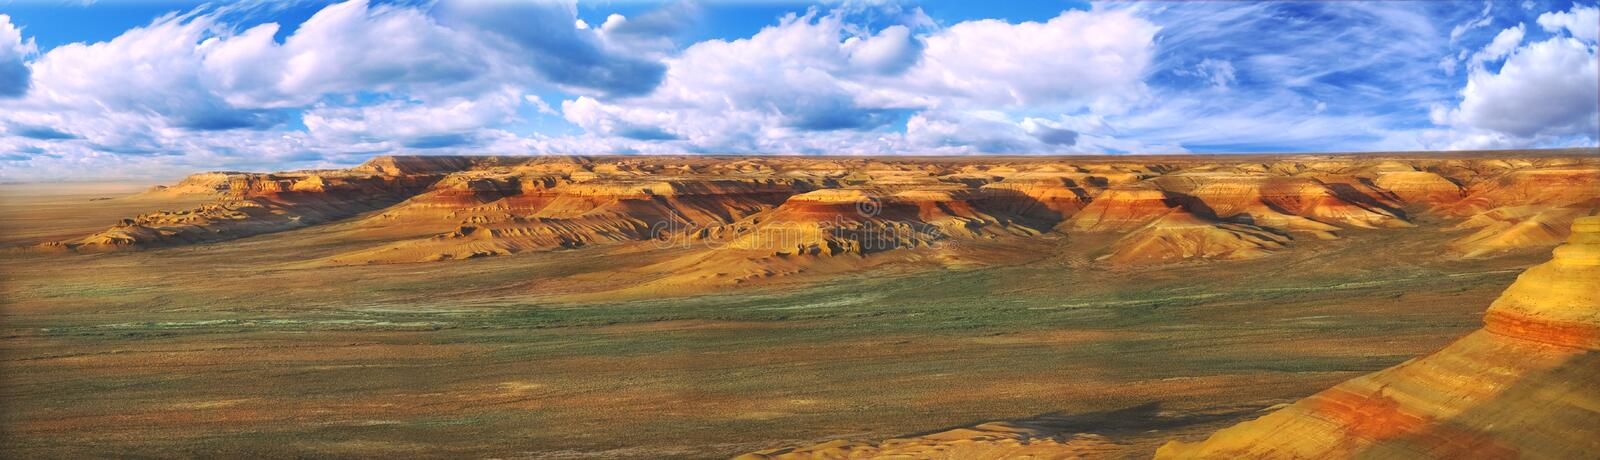 Plateau Oust-Ourt de panorama dans Kazakhstan photo stock